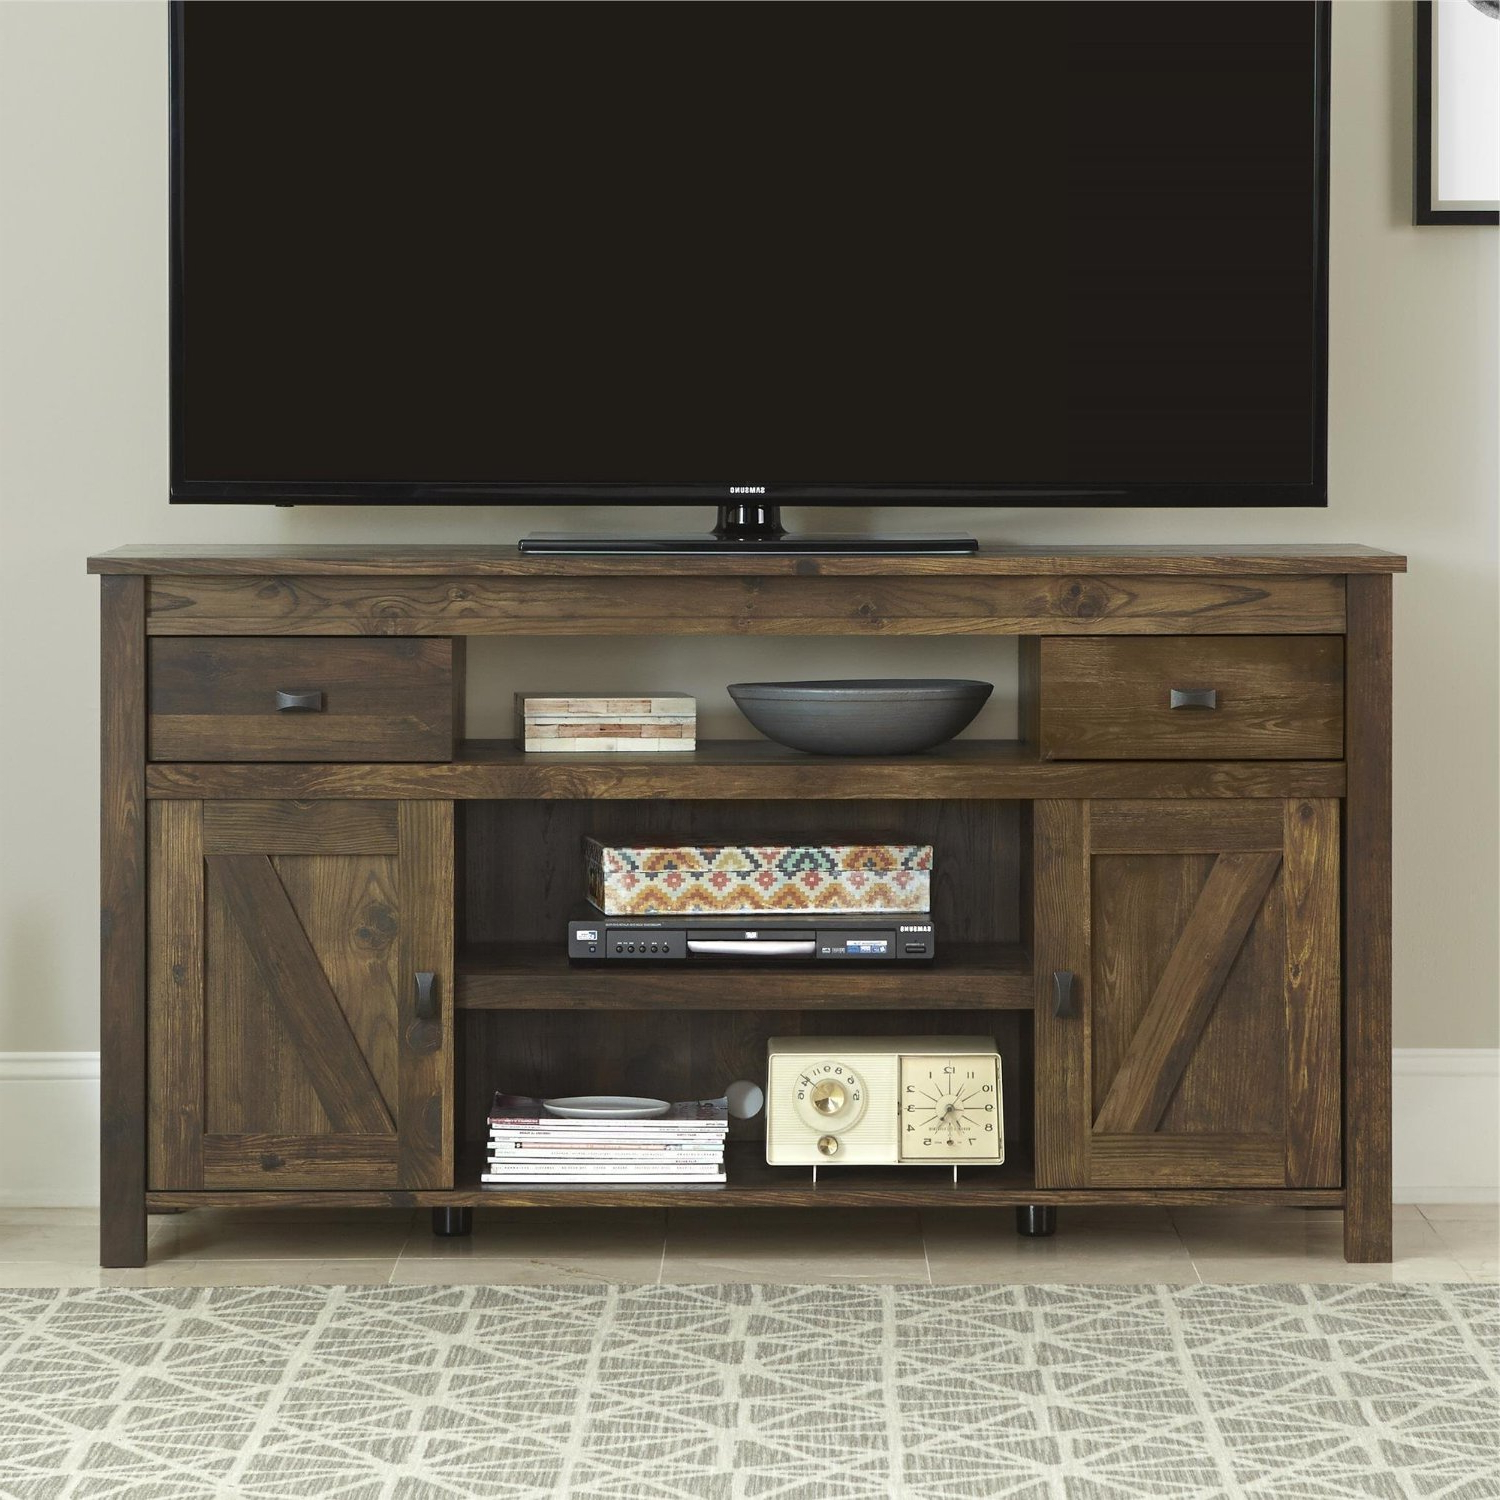 84 Inch Tv Stands Throughout Most Recent Cheap 84 Inch Tv Stand, Find 84 Inch Tv Stand Deals On Line At (View 13 of 20)